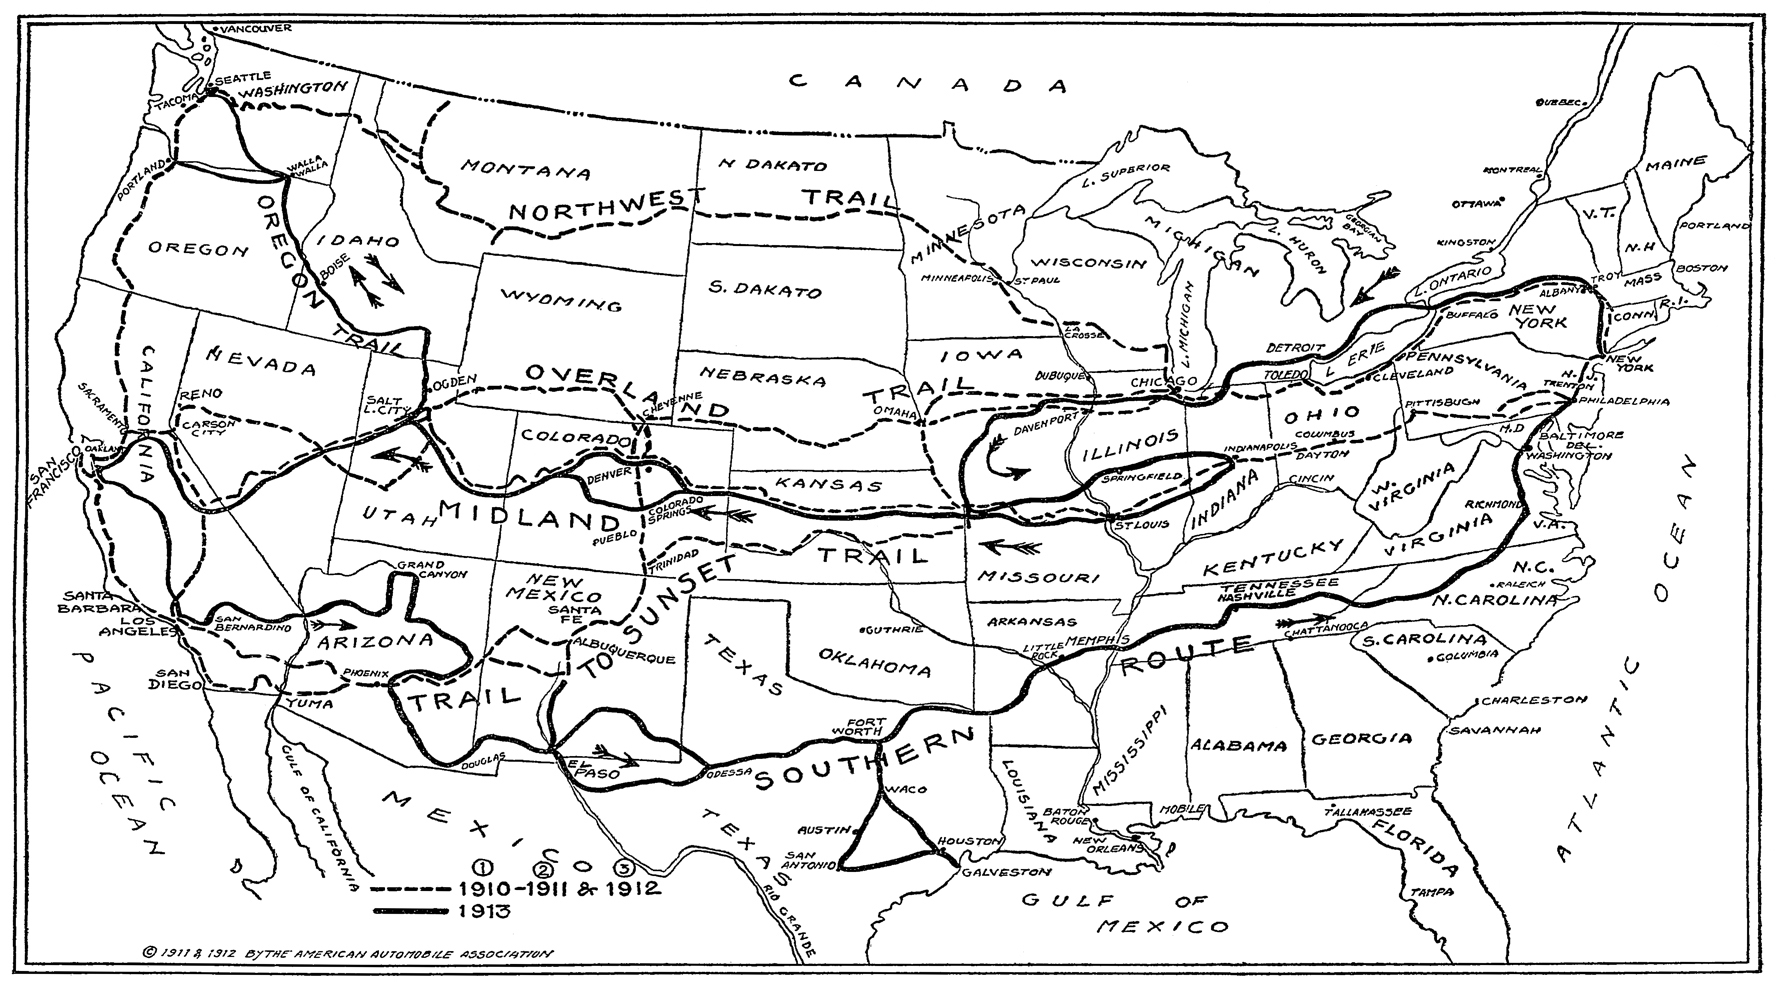 To Map Two Trails Across Continent New York Times May 4 1913 at